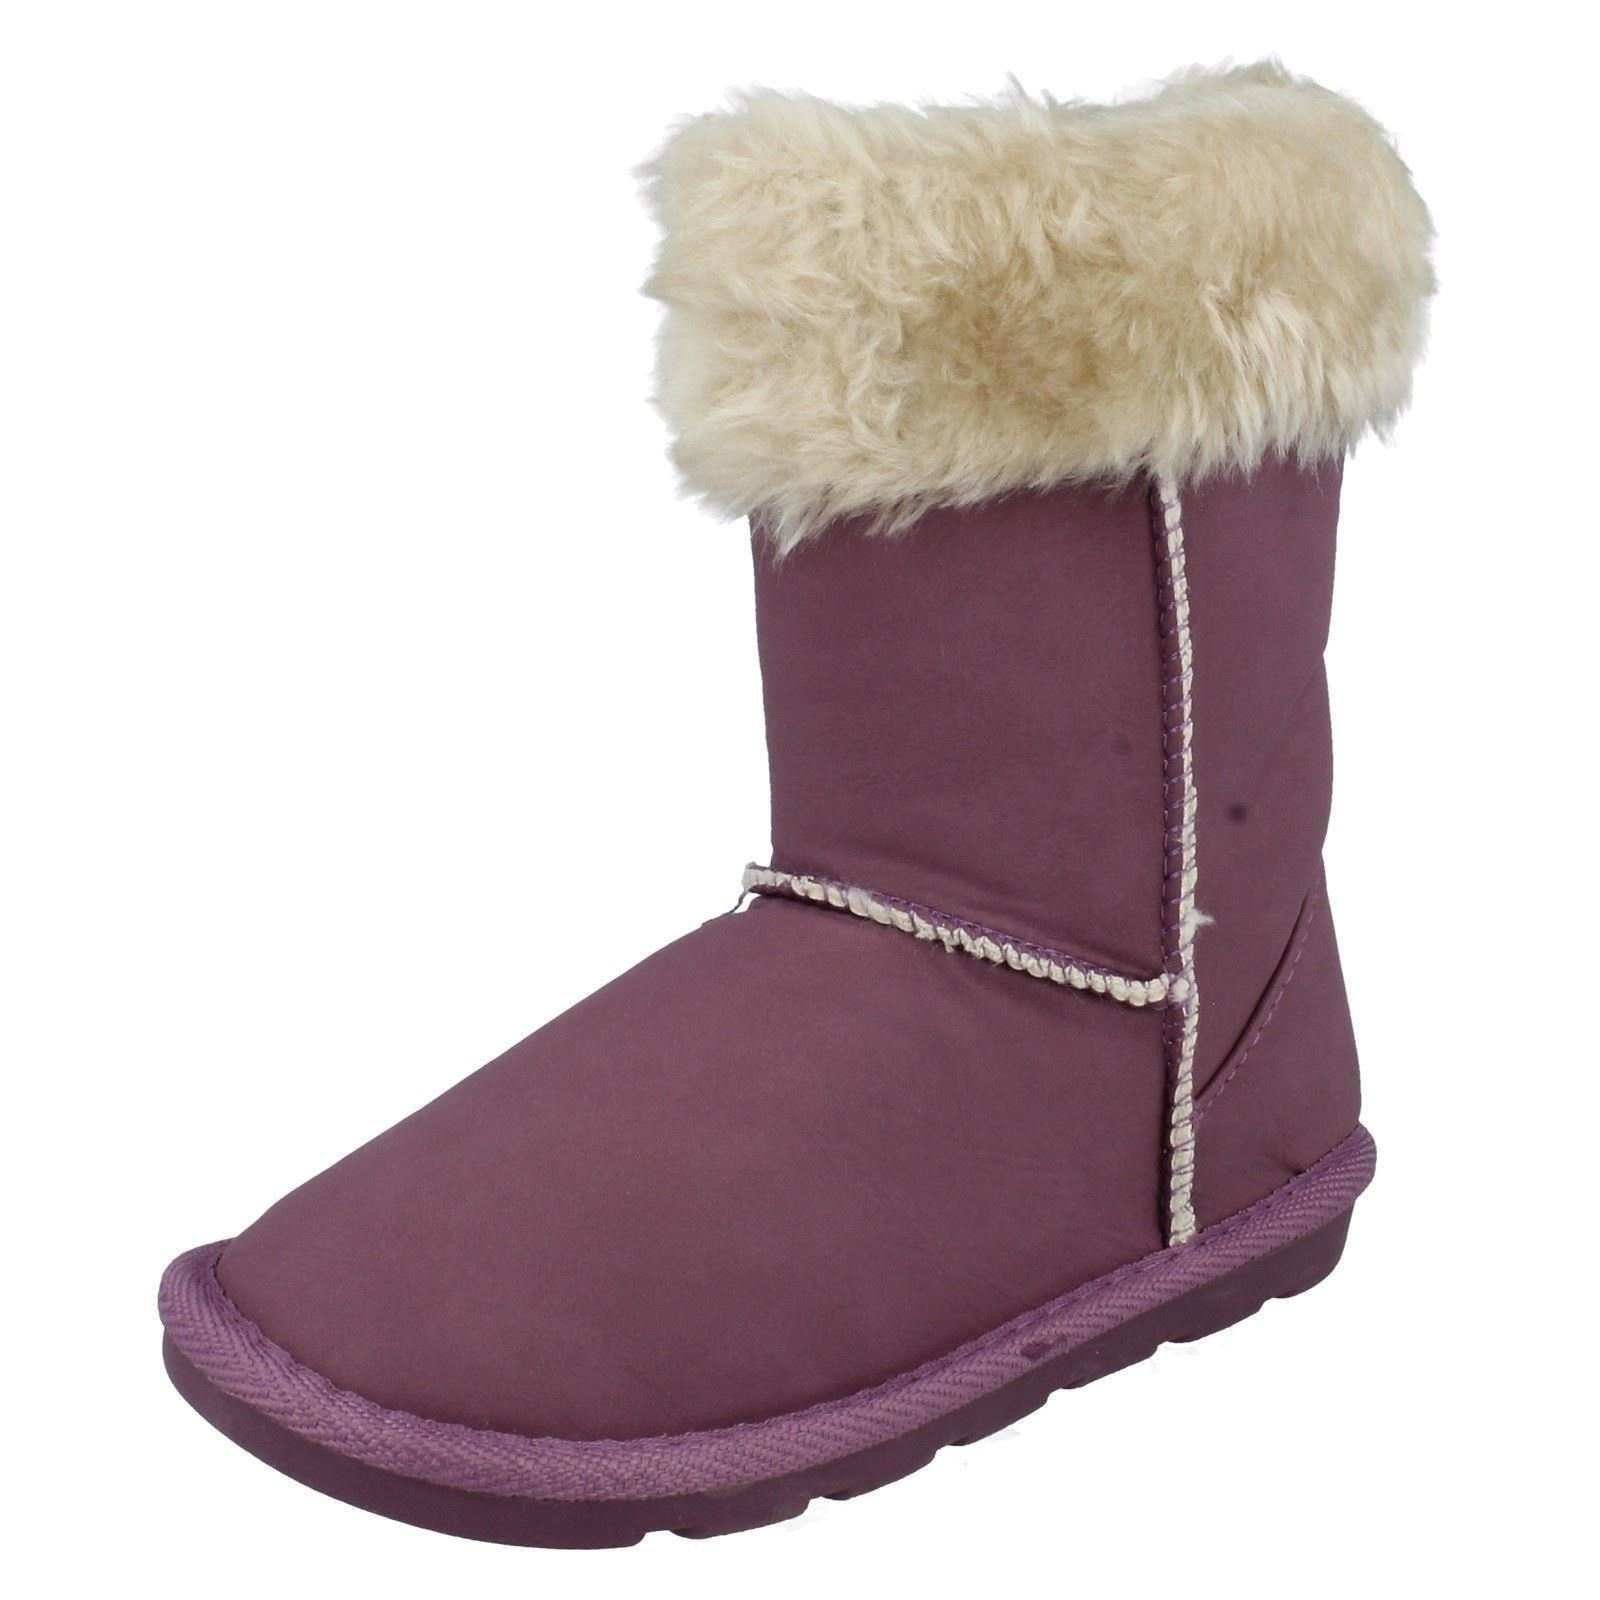 Girls Spot On Boots With Faux Fur Trim H4097